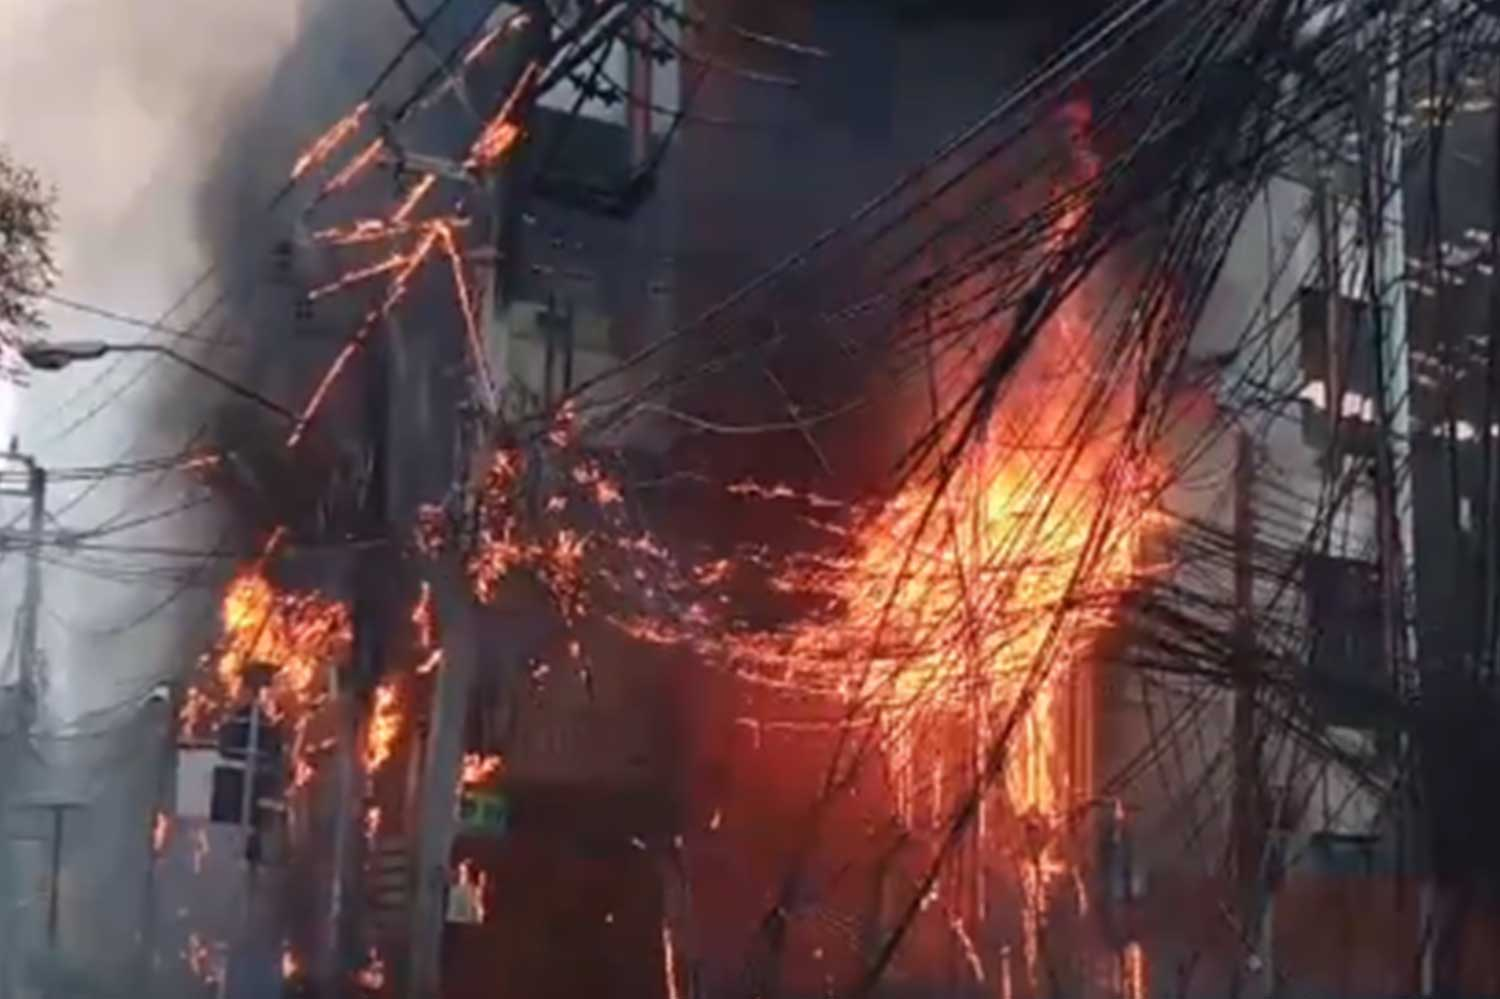 Overhead cables are ablaze in front of Sawasdee Wittaya School on Sukhumvit Soi 31 on Saturday afternoon, apparently the result of an electrical short-circuit. (Captured from clip via @js100radio Twitter)